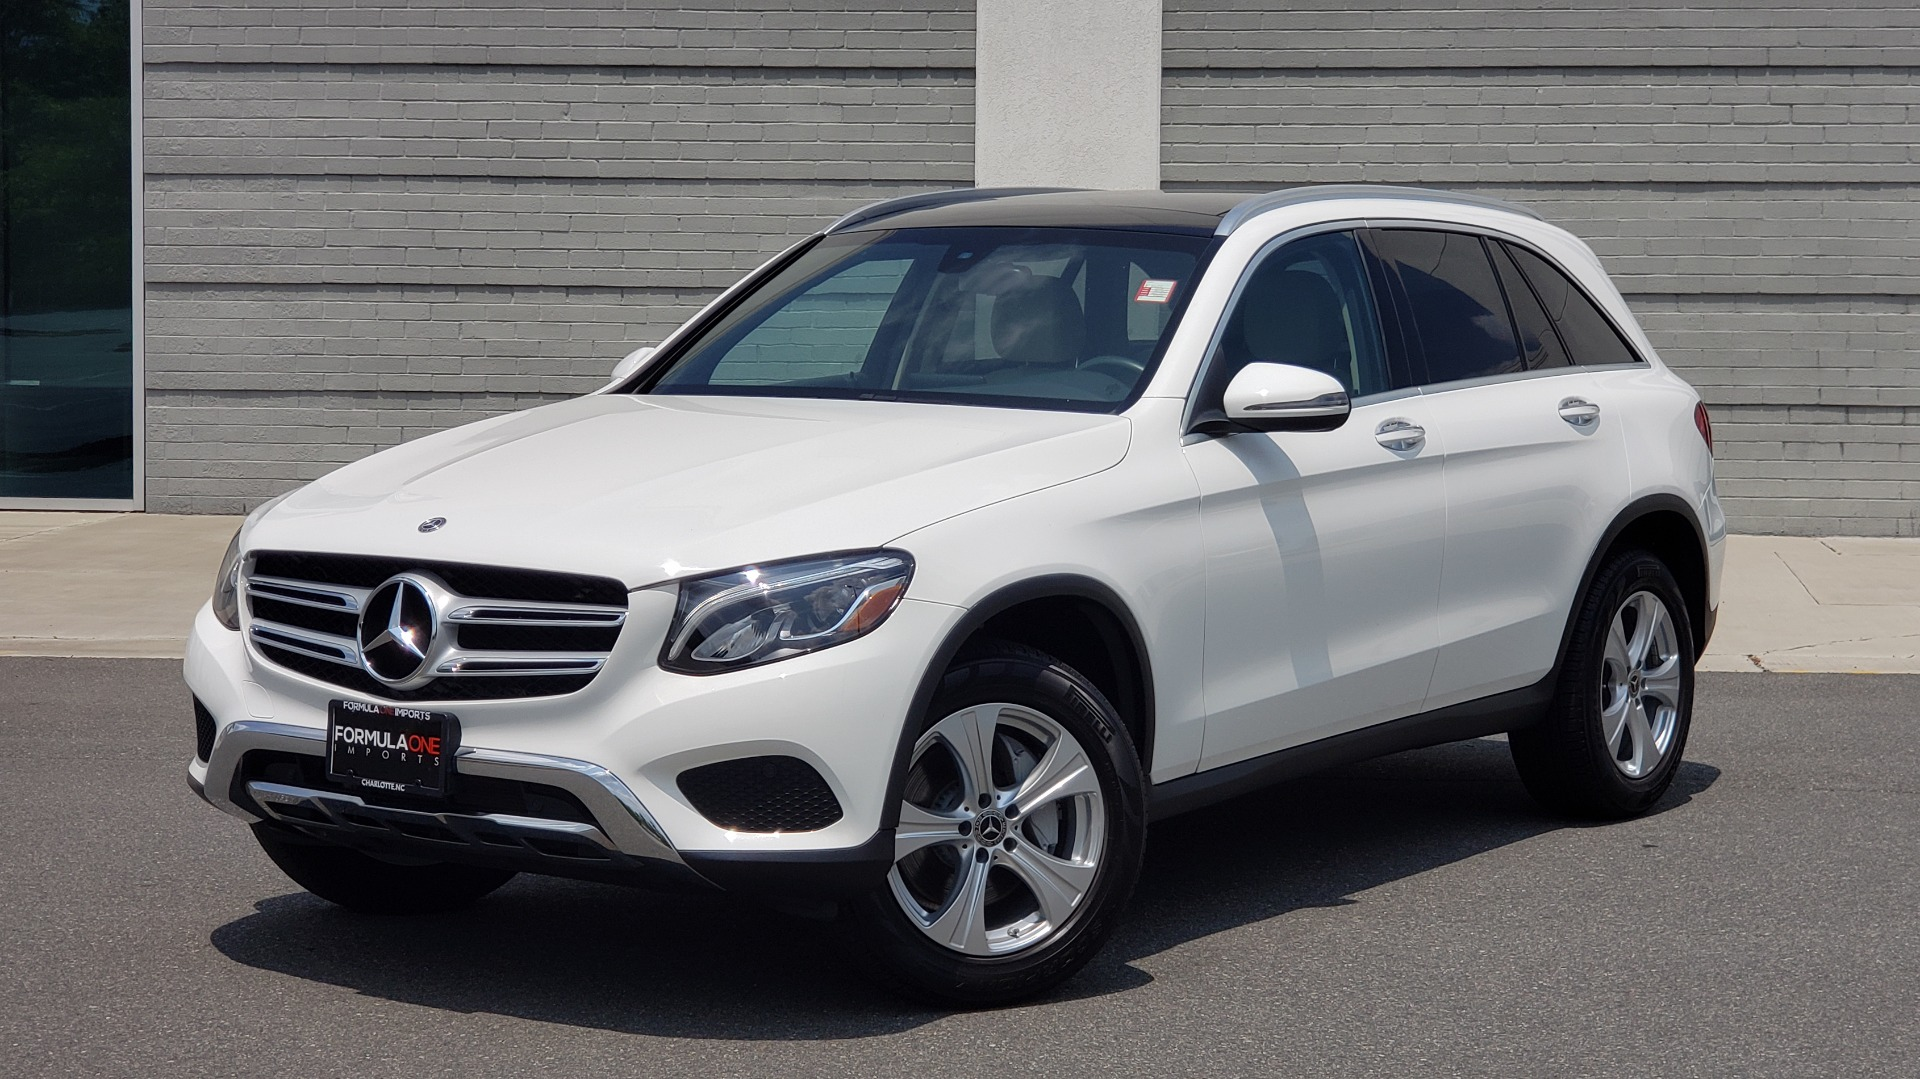 Used 2018 Mercedes-Benz GLC 300 PREMIUM 4MATIC / PANO-ROOF / BURMESTER / REARVIEW for sale $36,295 at Formula Imports in Charlotte NC 28227 1